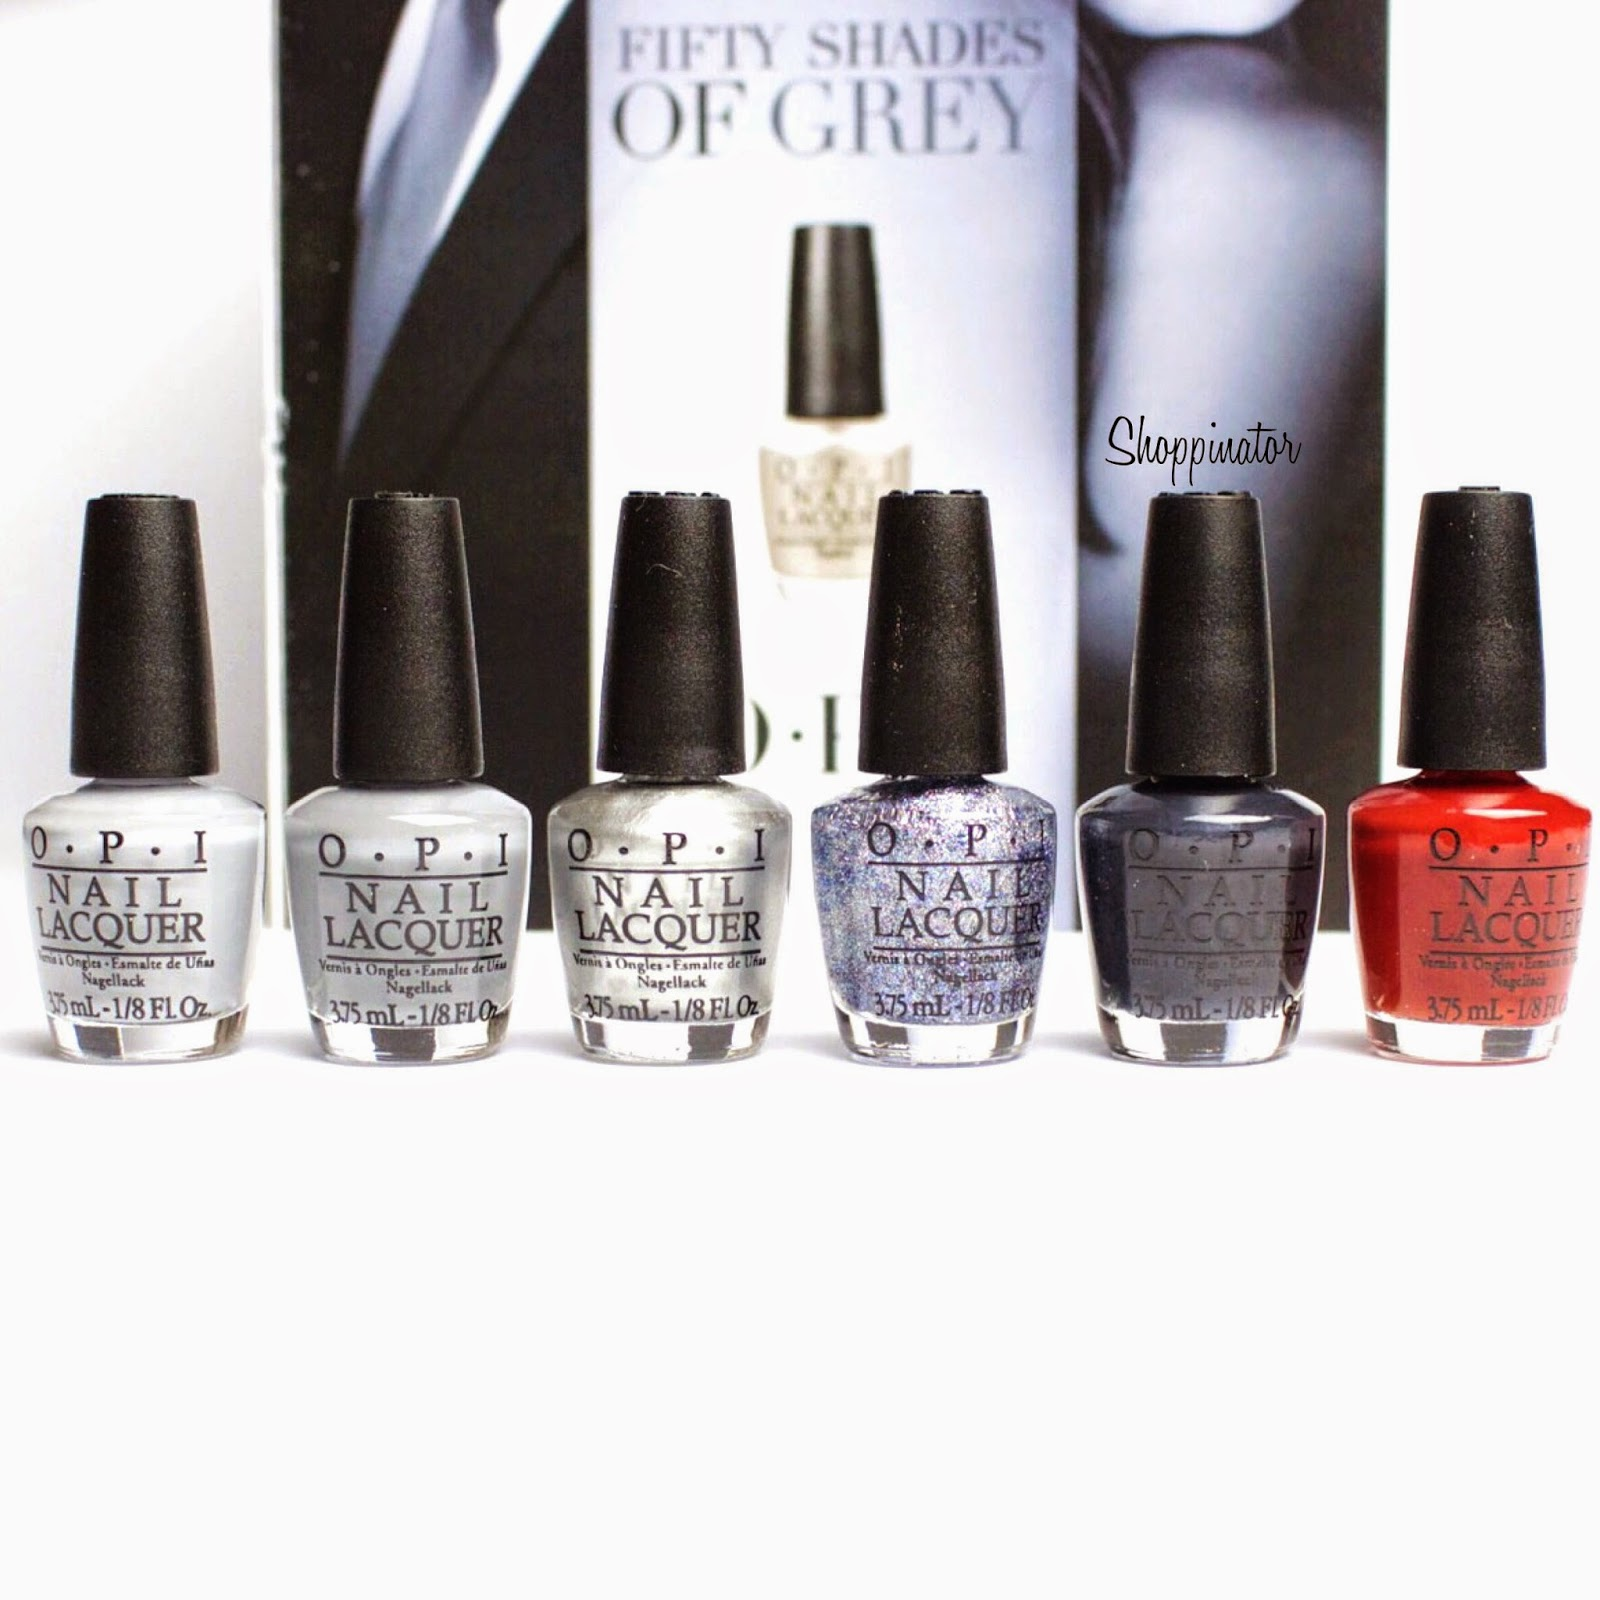 Opi-Shades-of-grey-LE-Swatch-Shoppinator-Cement-the-deal-Mini-Set-50-Shades-of-Grey-My-Silk-Tie-Dark-Side-of-the-Mood-Romantically-Involved-Shine-for-me-Embrace-the-Grey-Swatch